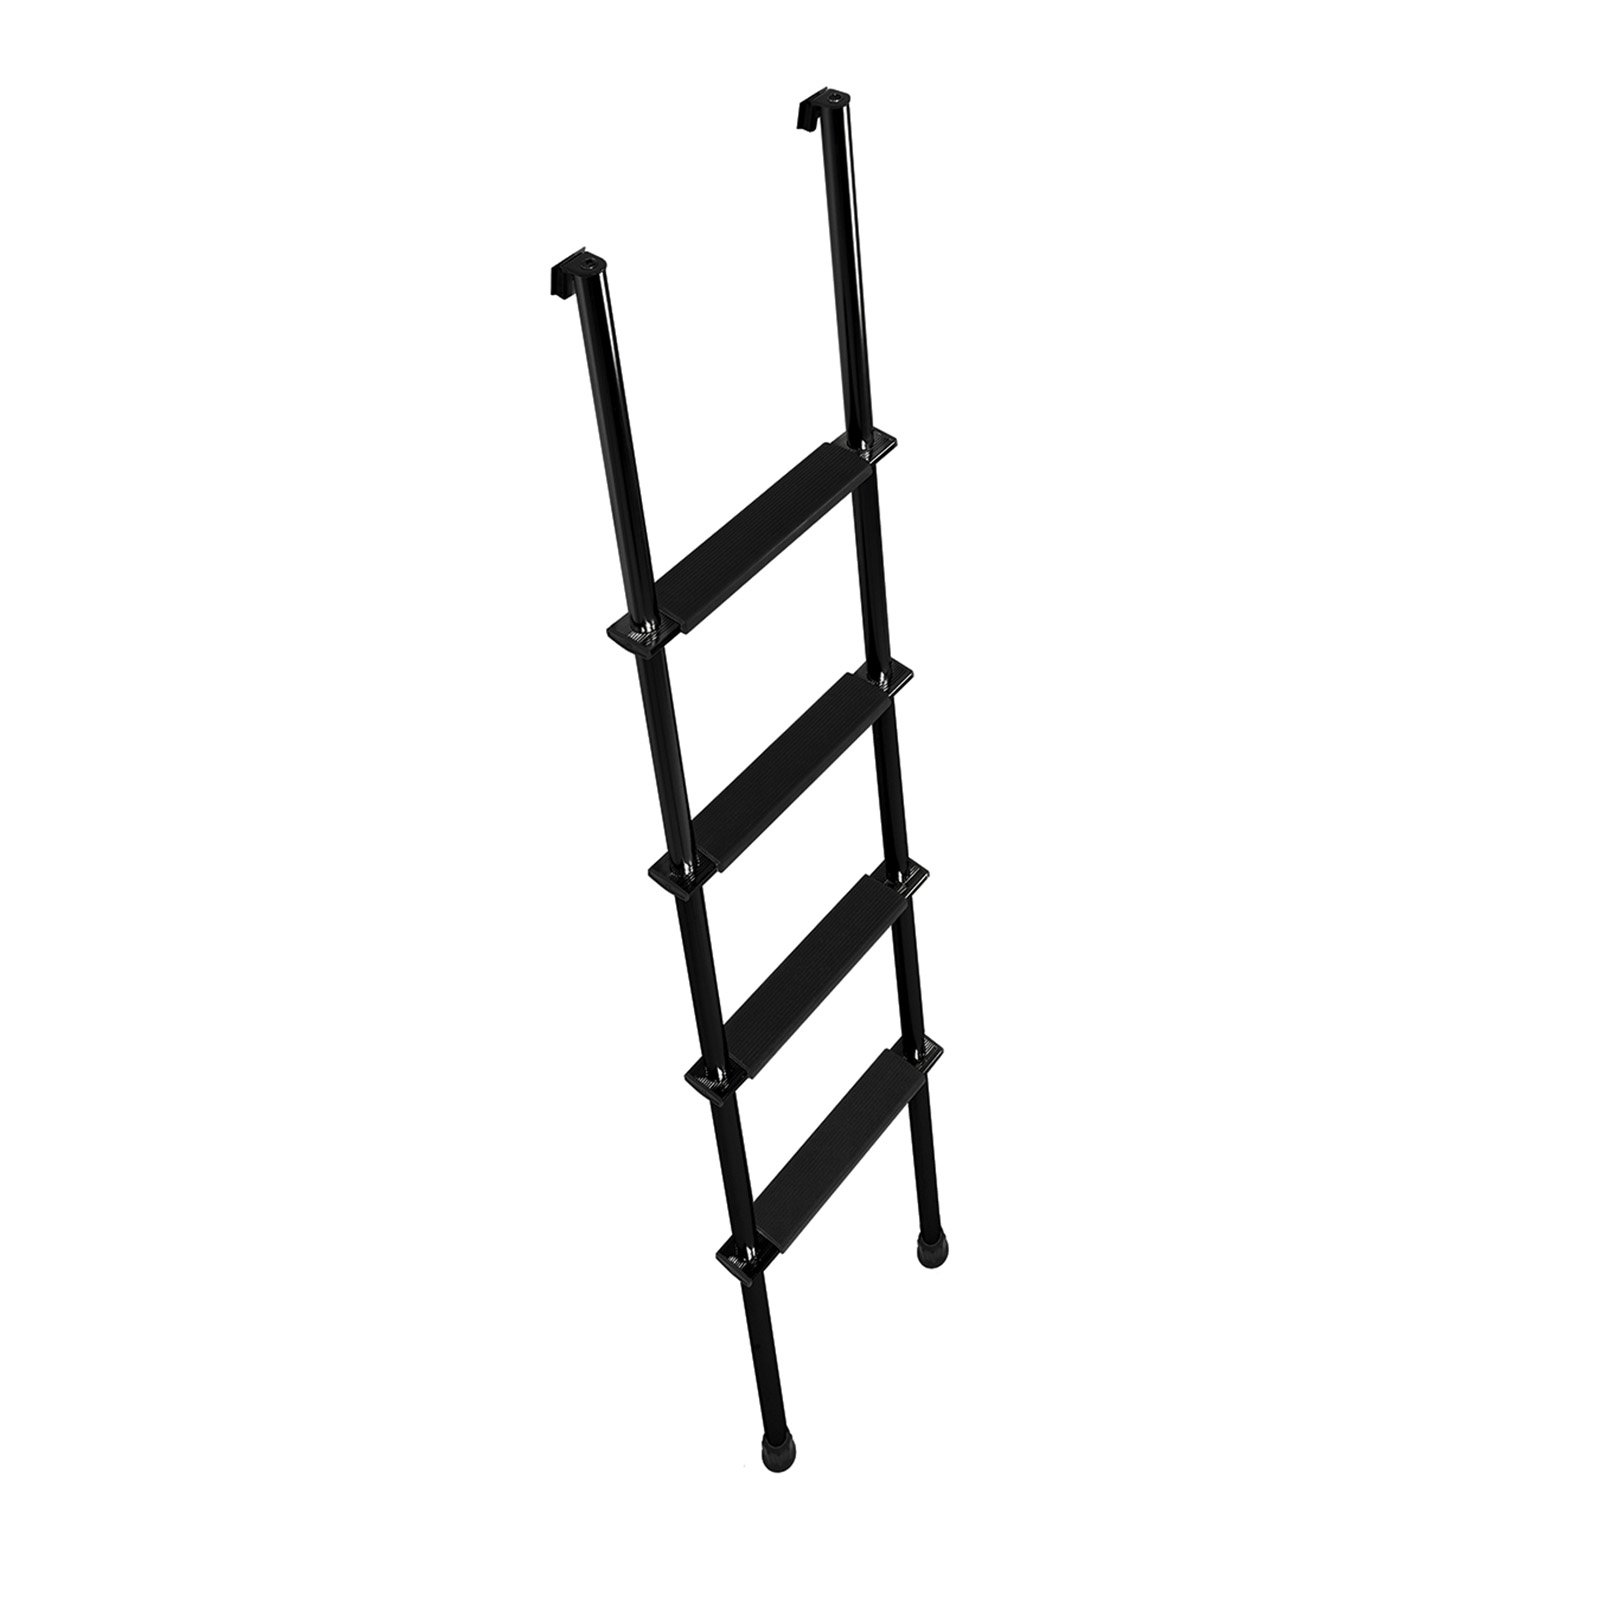 Stromberg Carlson LA-460B 60'' Black Bunk Ladder with Hook Retainer and Extrusions by Stromberg Carlson (Image #1)